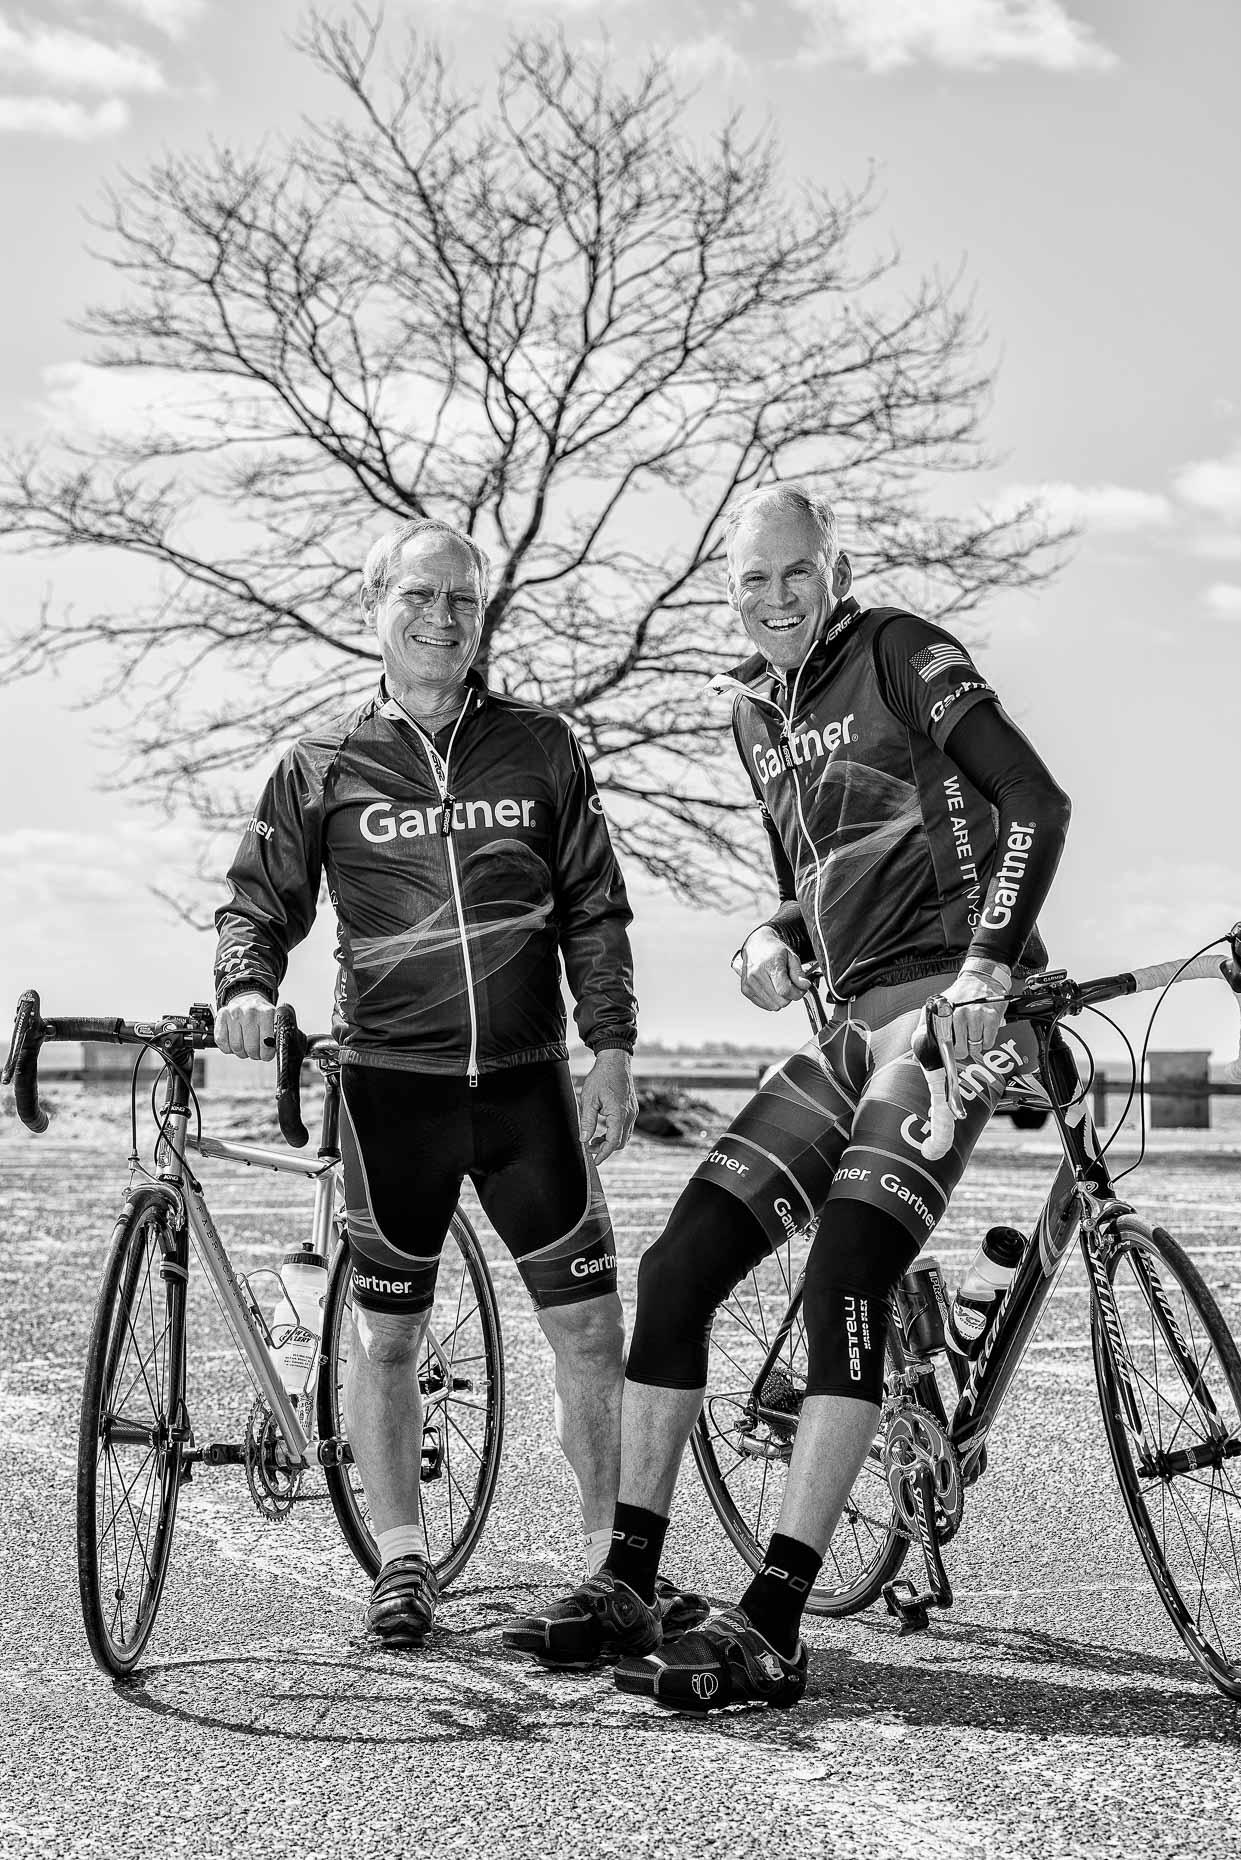 Two men with bicycles wearing Gartner bike jerseys and shorts in front of large tree